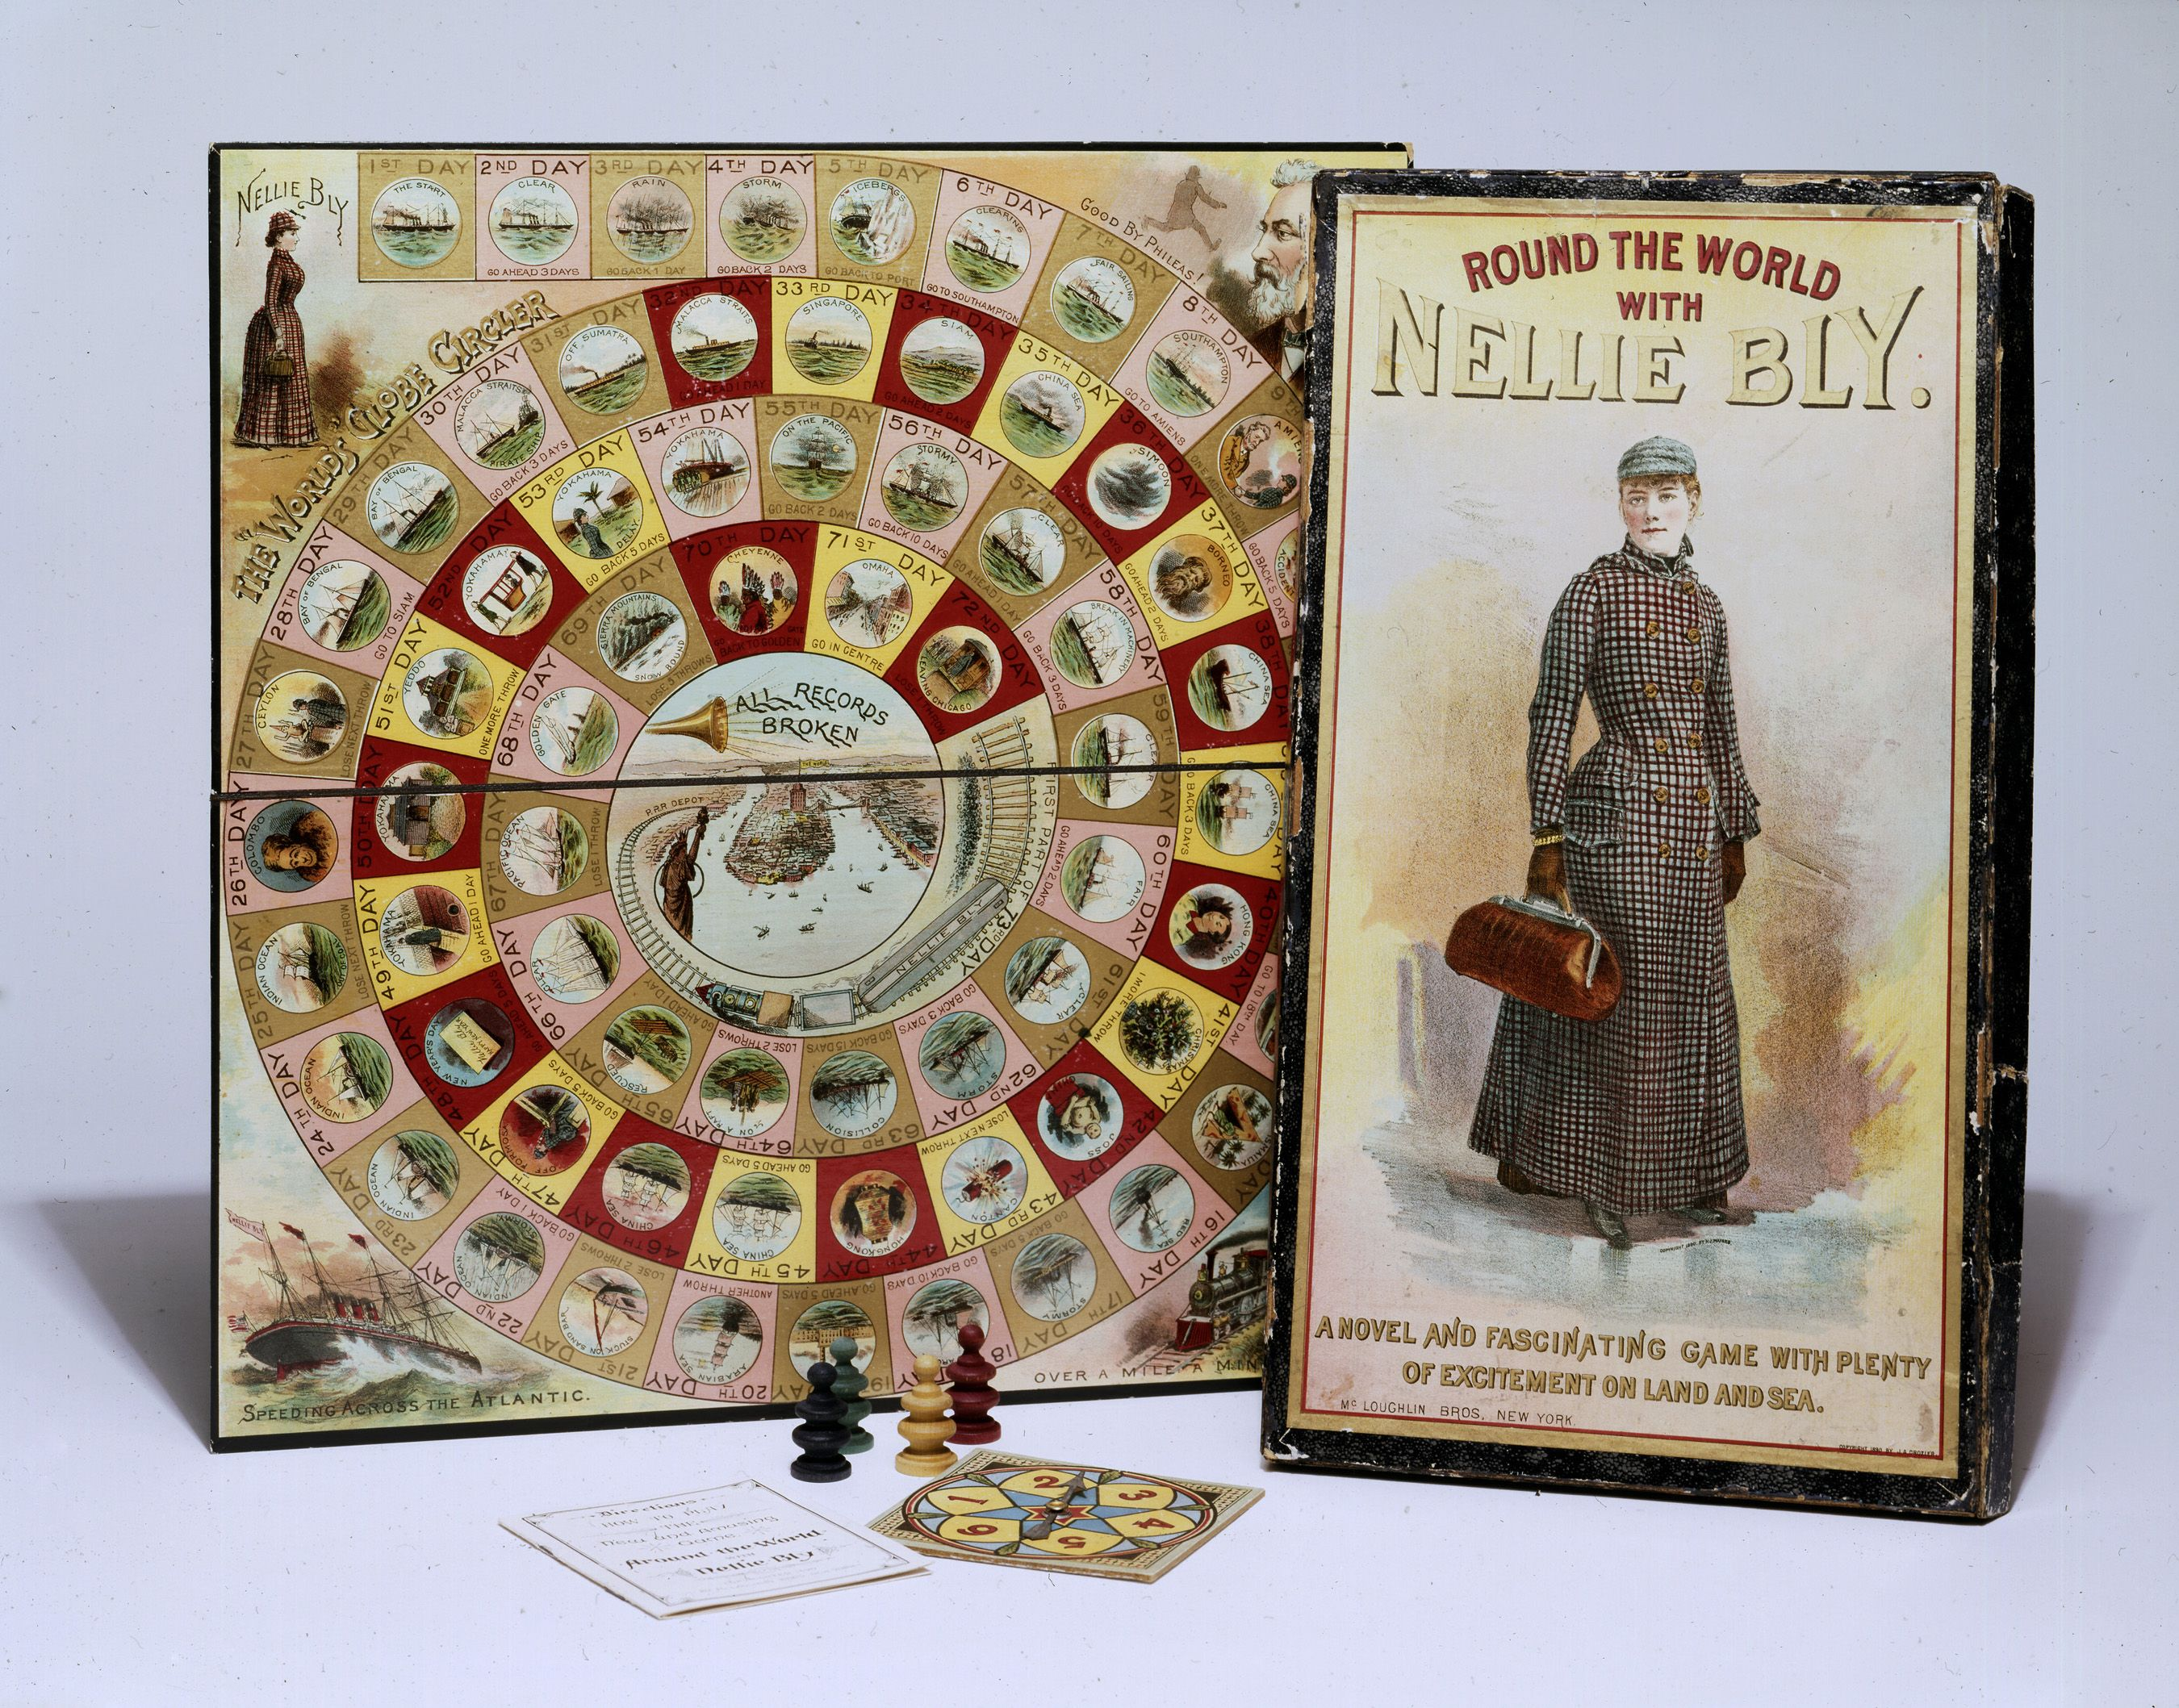 Nellie Bly Board Game With Images Nellie Bly Bly Around The